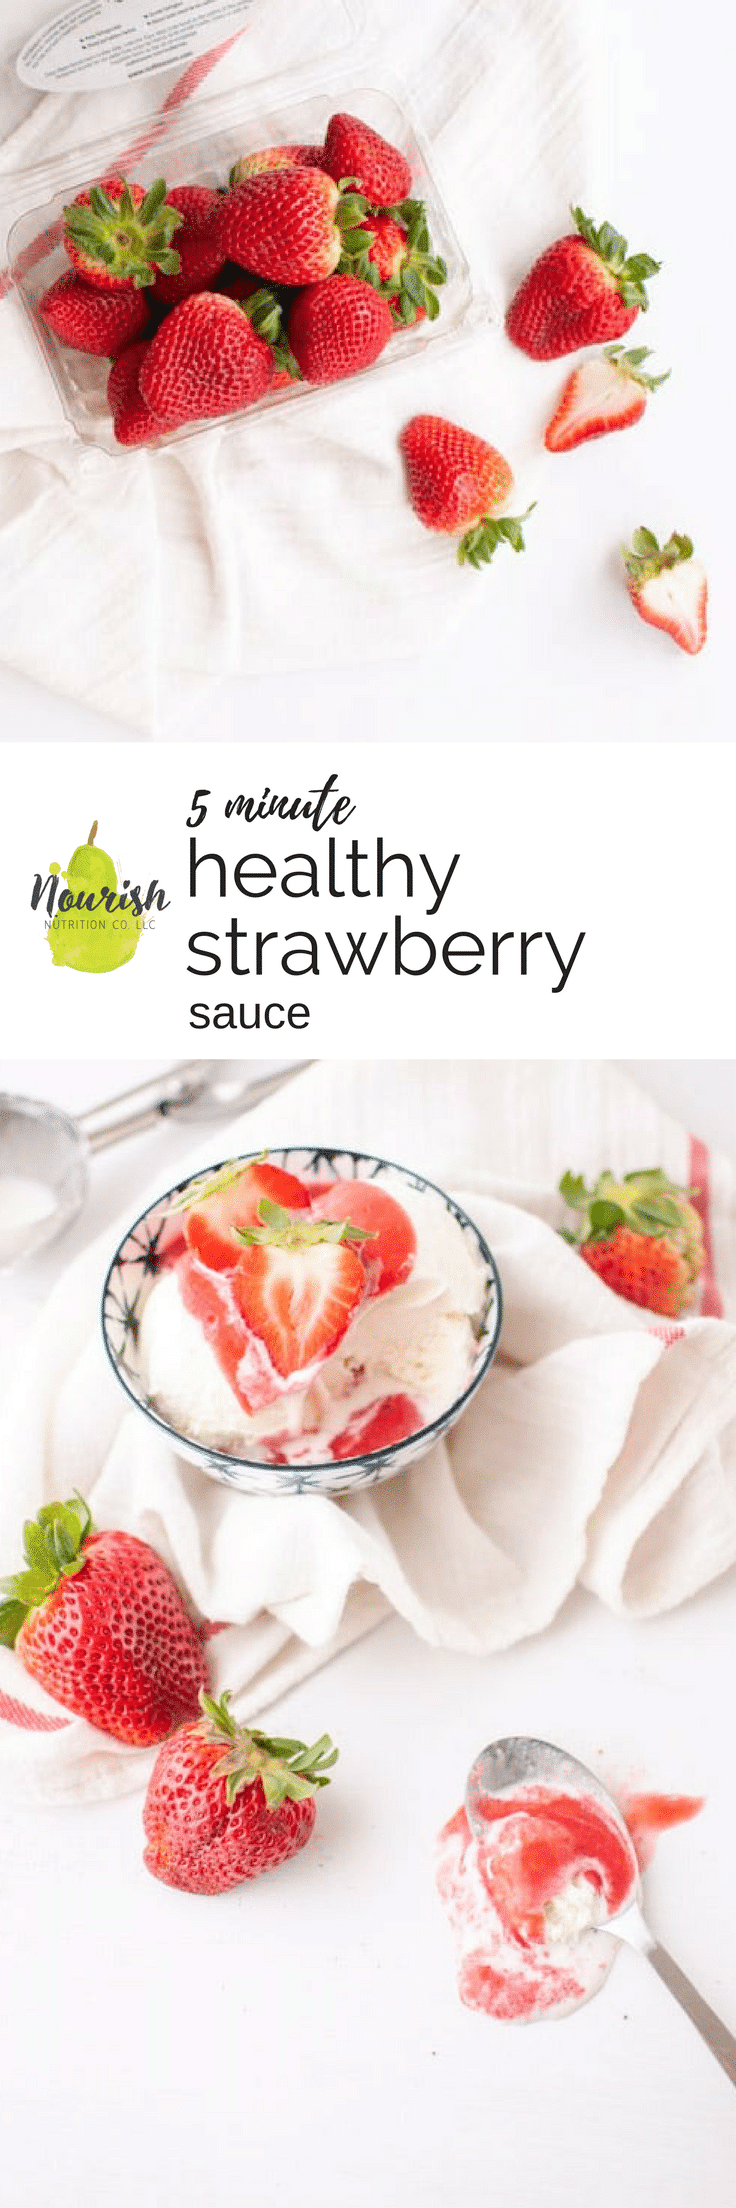 healthy strawberry sauce over ice cream and strawberries with a text overlay